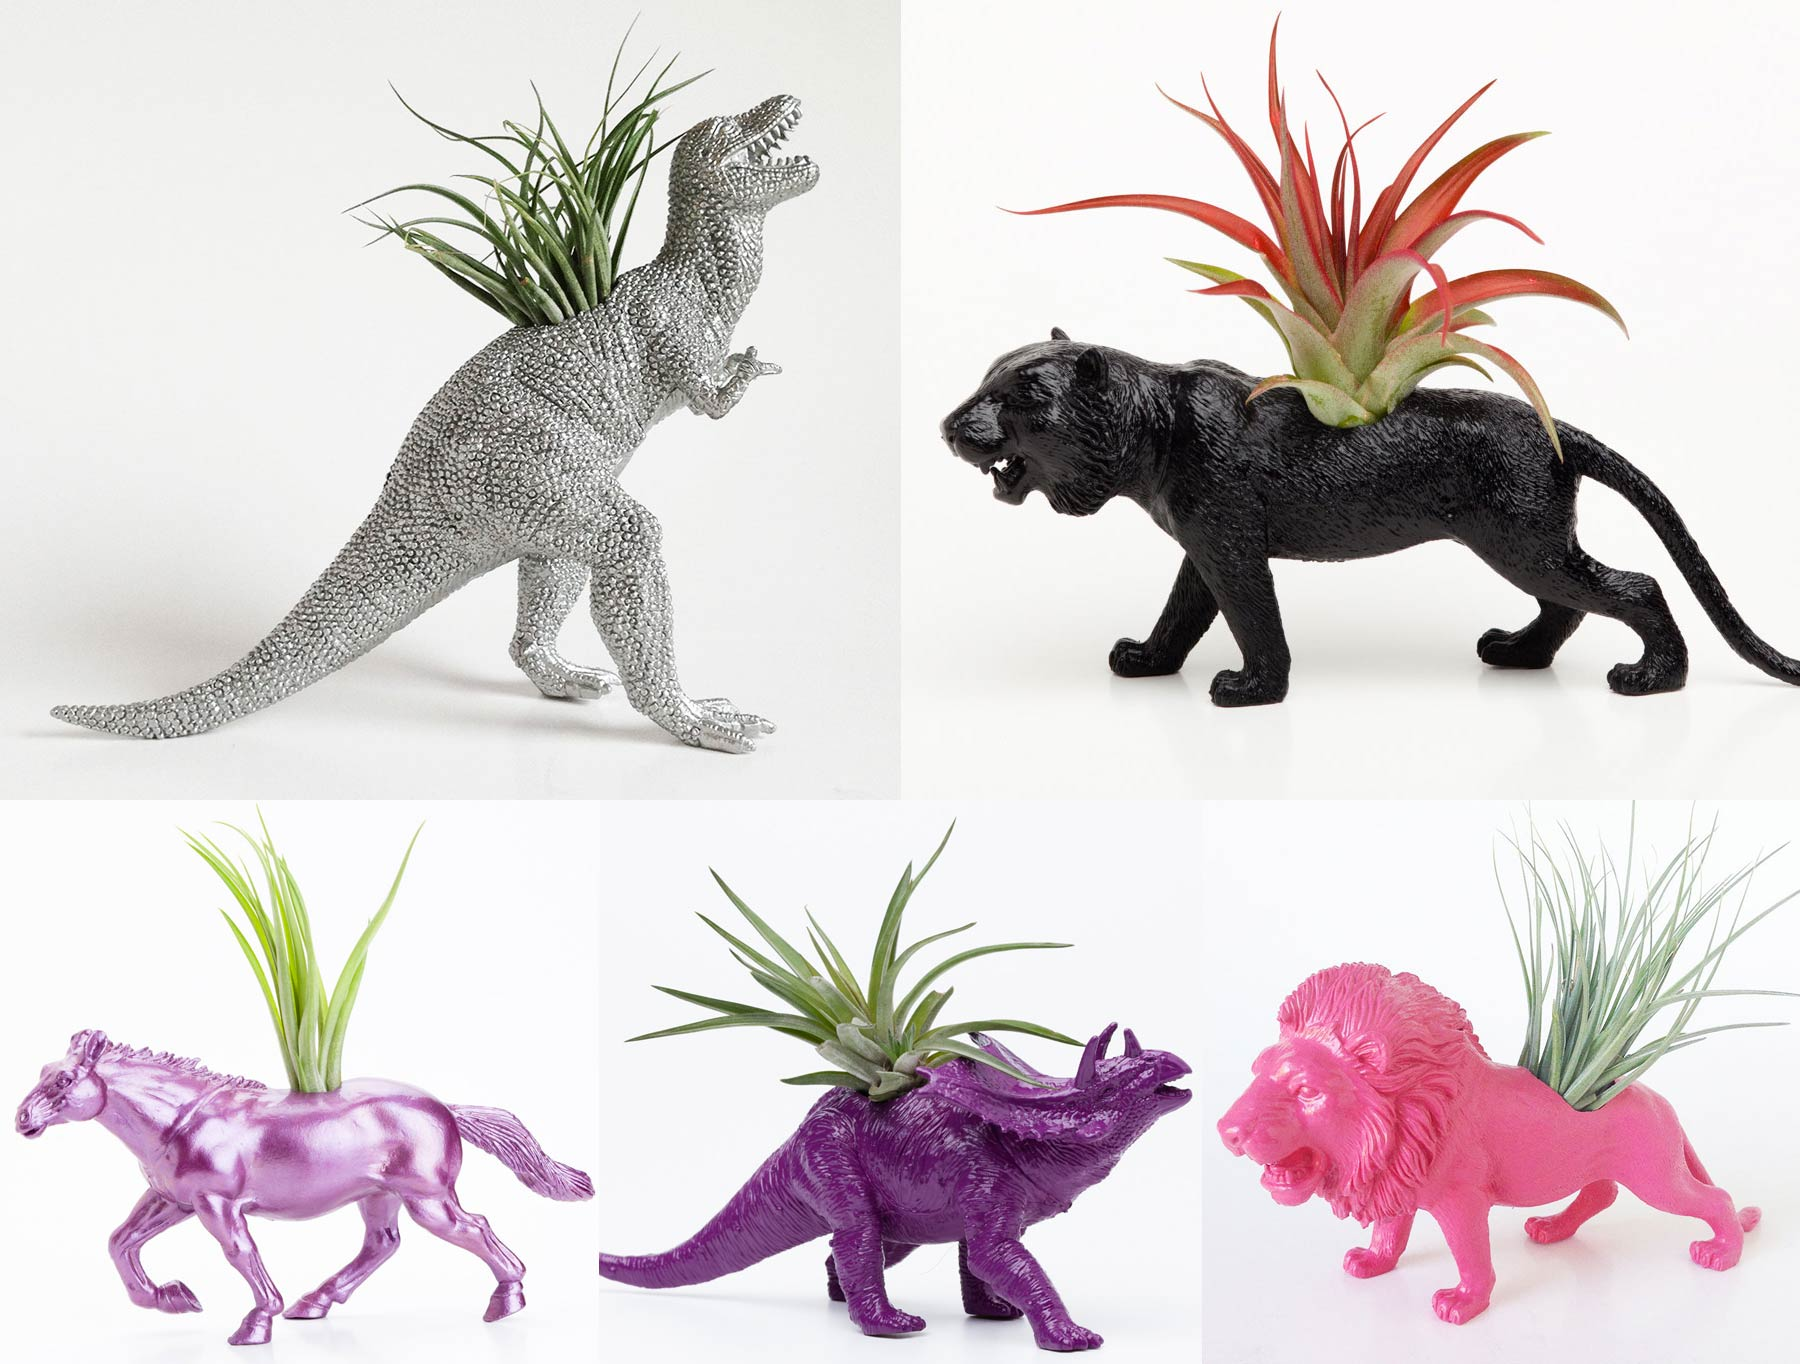 Plastic animal toys filled with tillandsia plants.